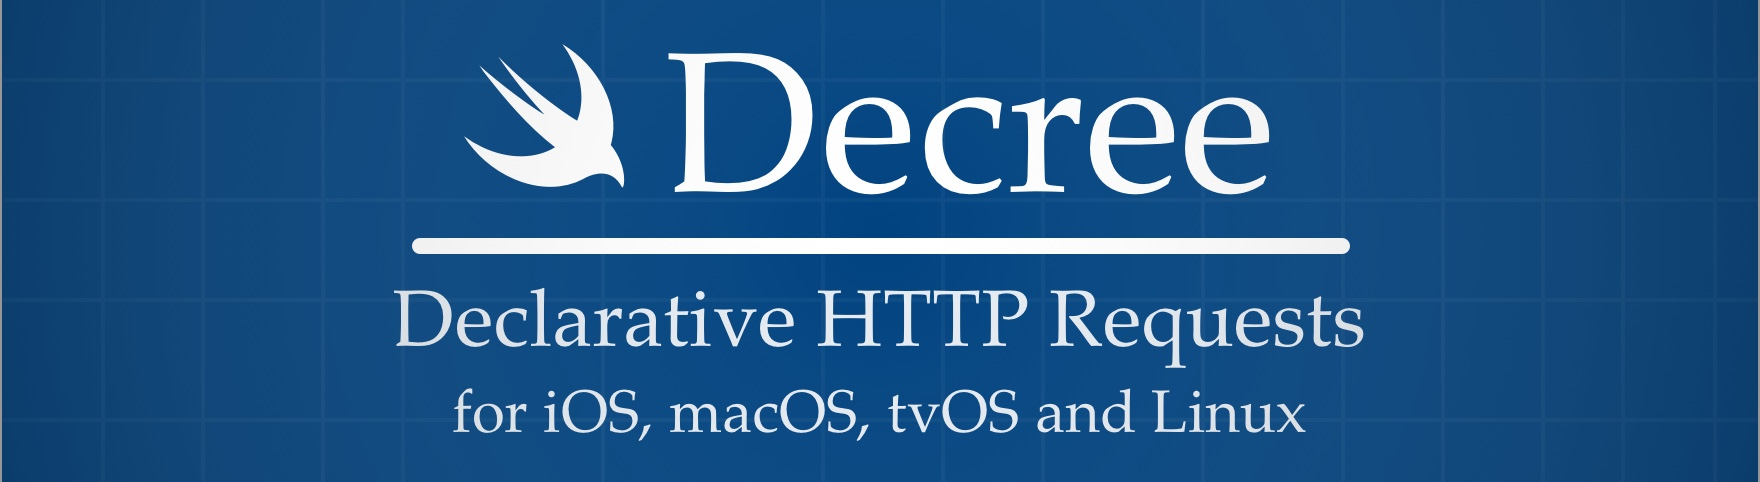 Decree - Declarative HTTP Requests